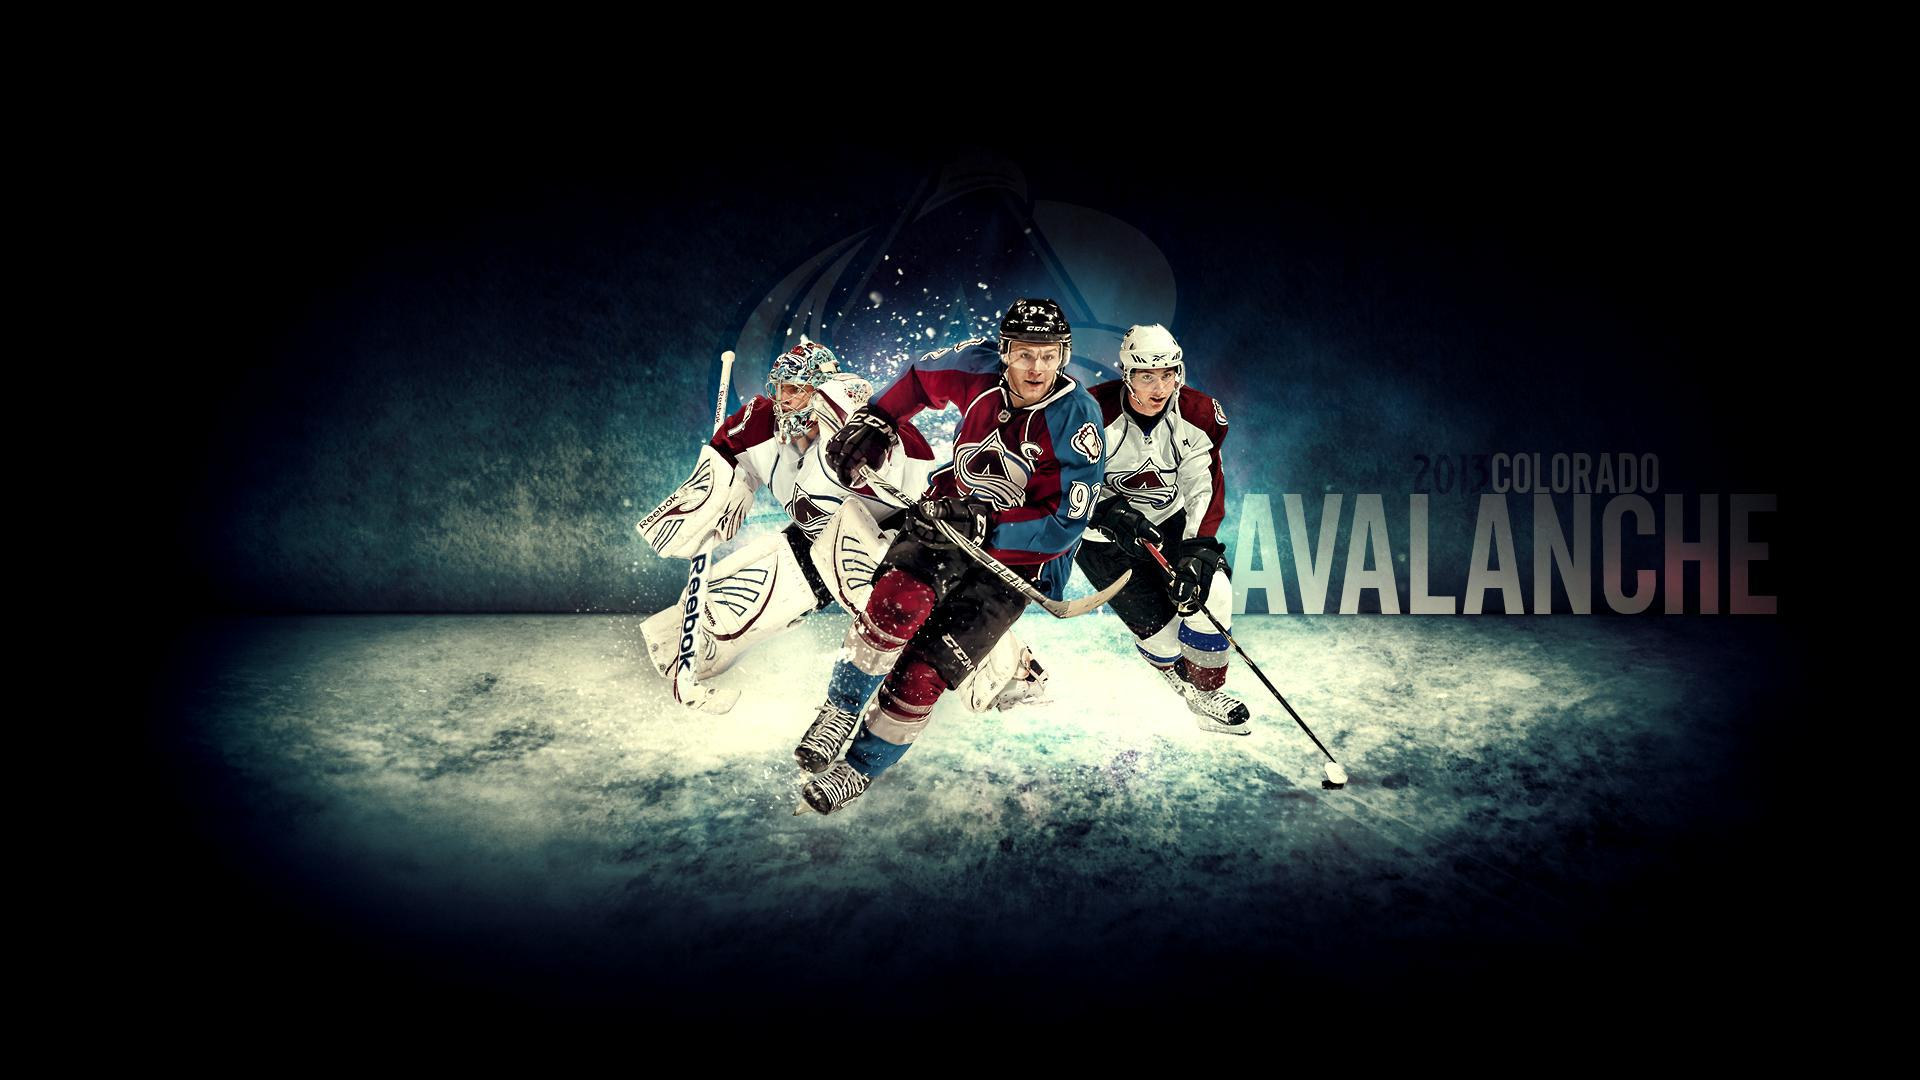 1920x1080 - Colorado Avalanche Wallpapers 27